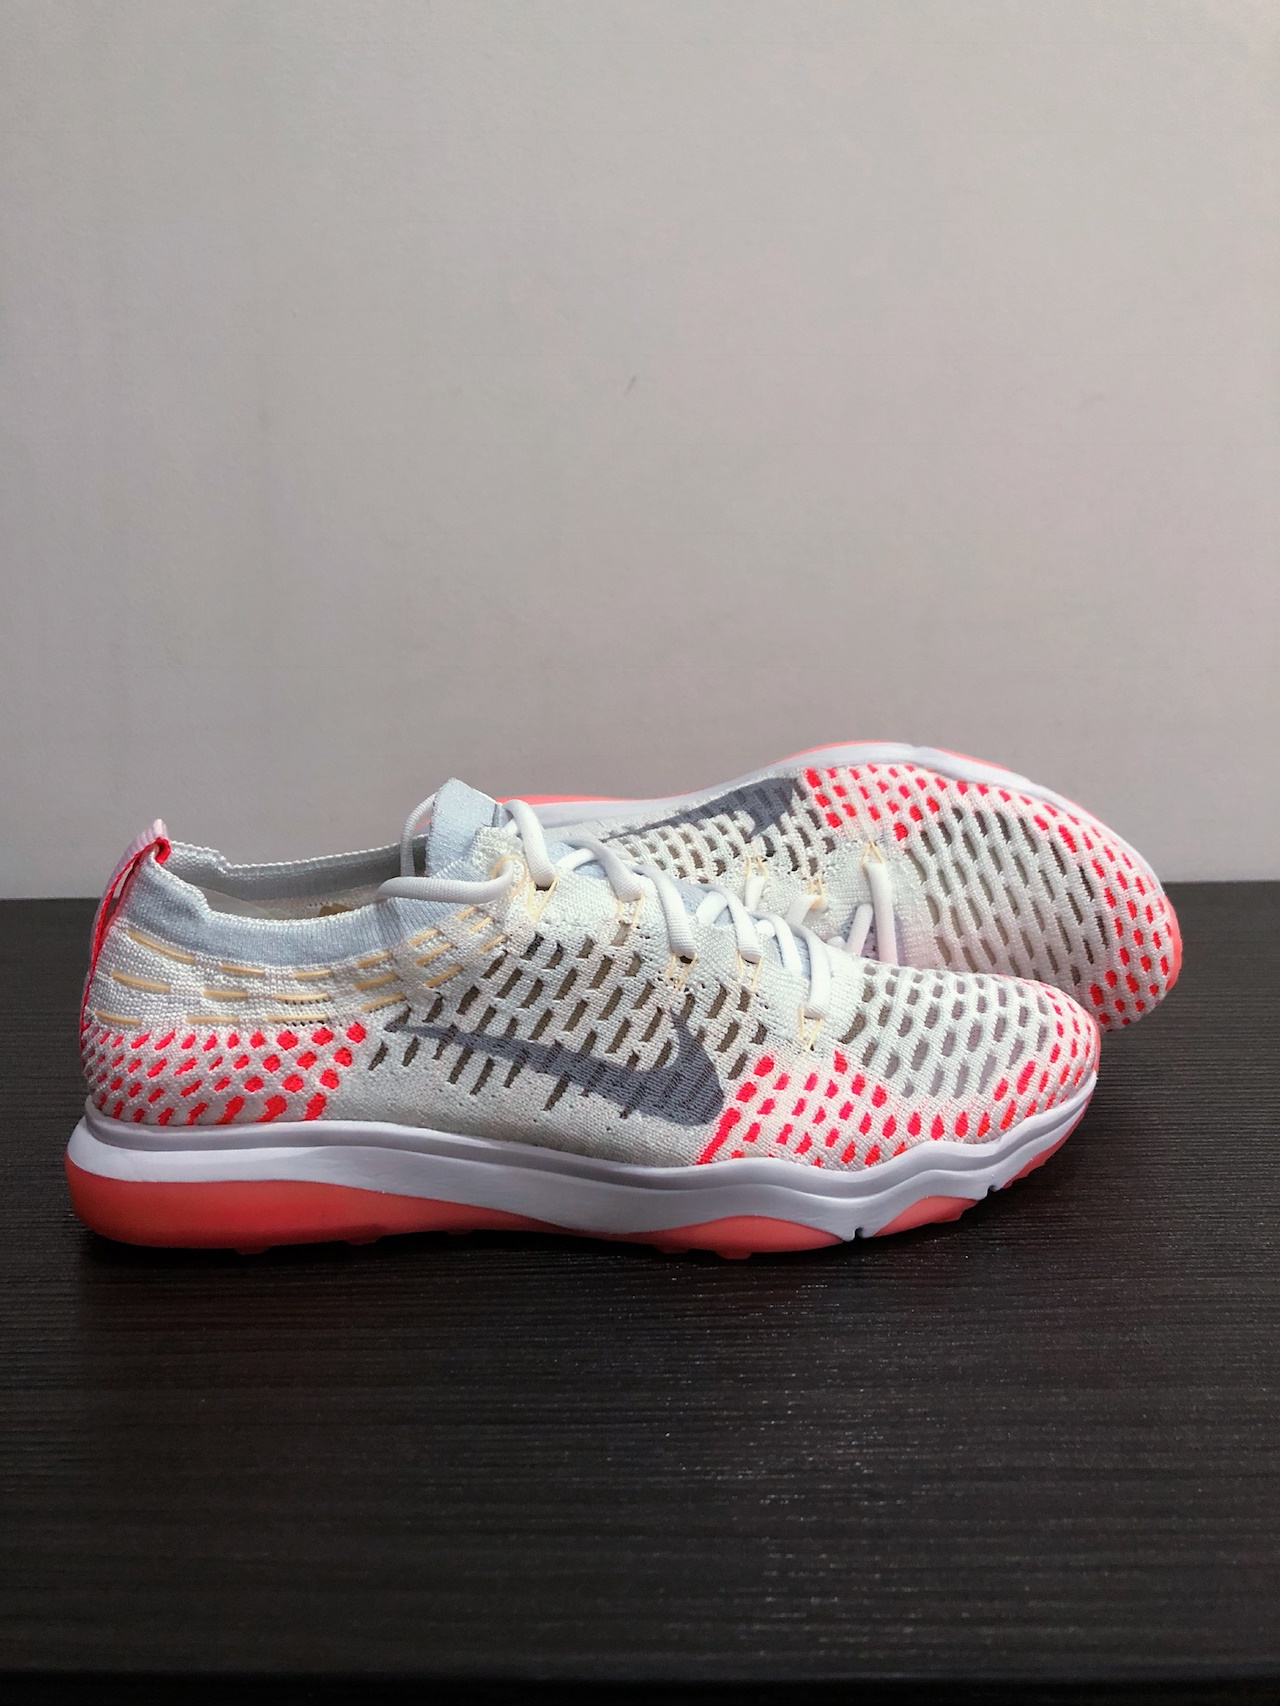 cheap for discount f7f47 ed6d5 W Air Zoom Fearless Flyknit (White Wolf Grey-Racer Pink) Style  850426 102.  US 8, UK 5.5, EU 39. Womens Collection